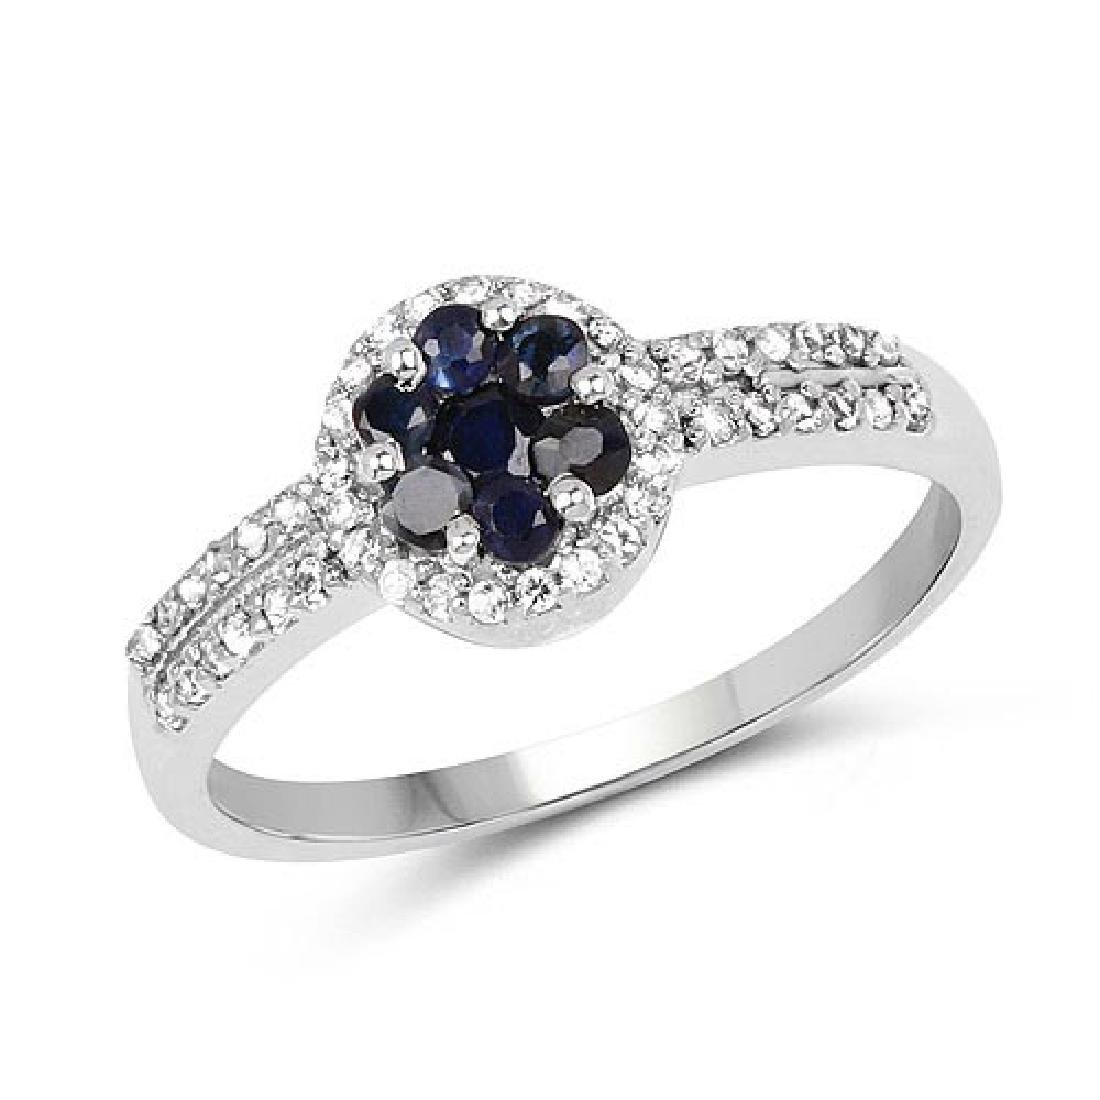 0.72 Carat Genuine Blue Sapphire and White Topaz .925 S